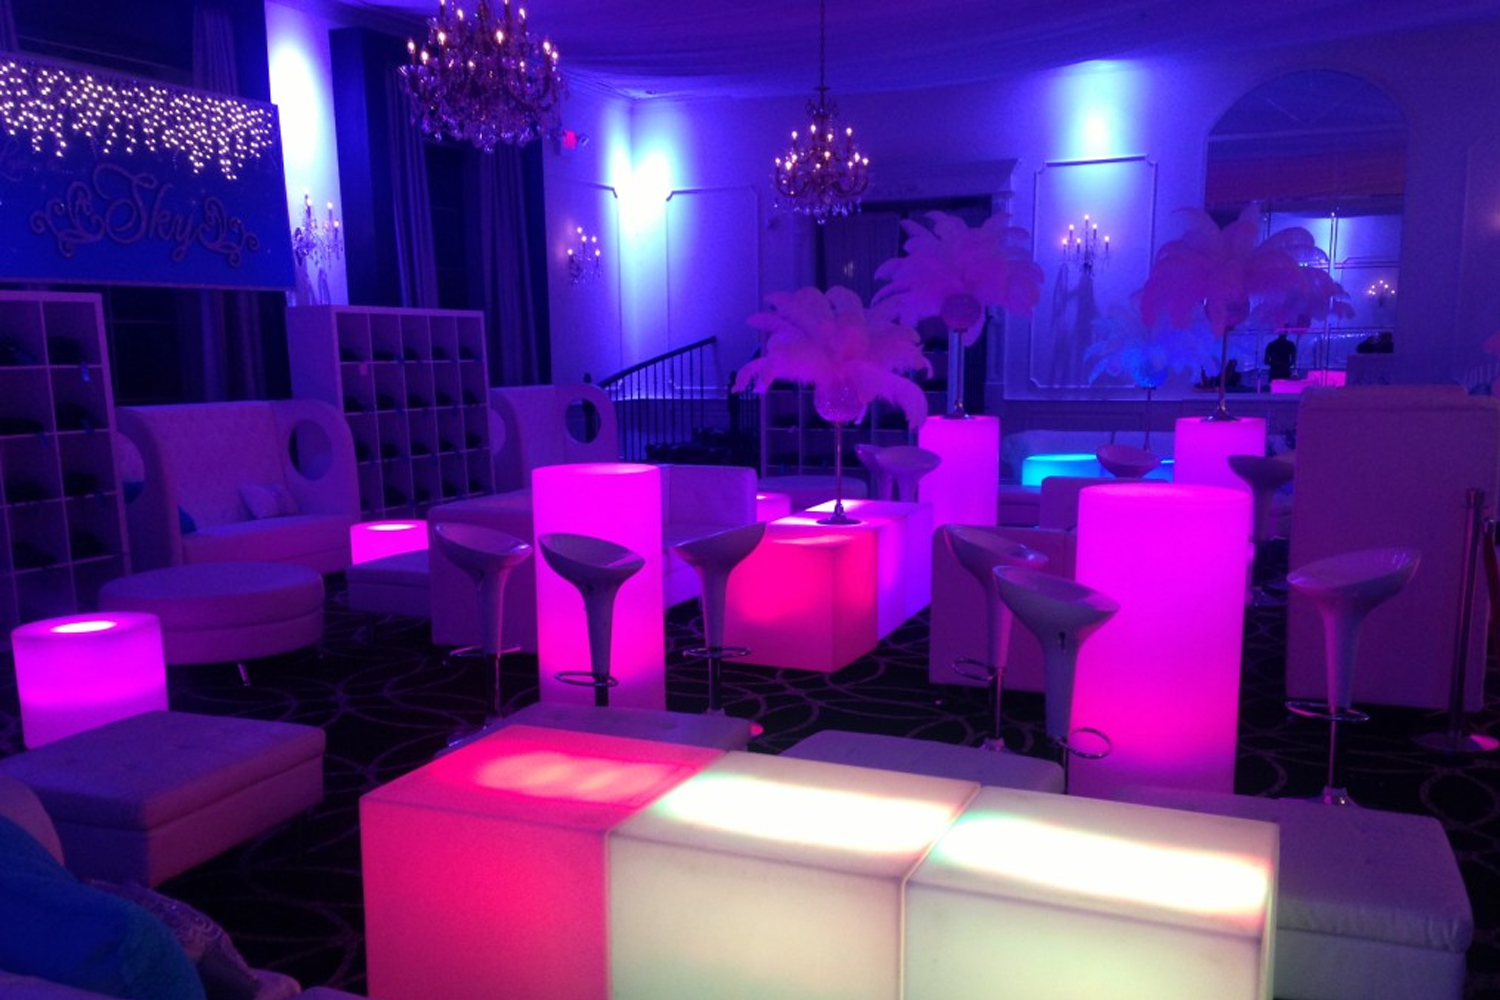 Alquiler muebles led la tendencia del momento blog ame for Mobiliario para bar